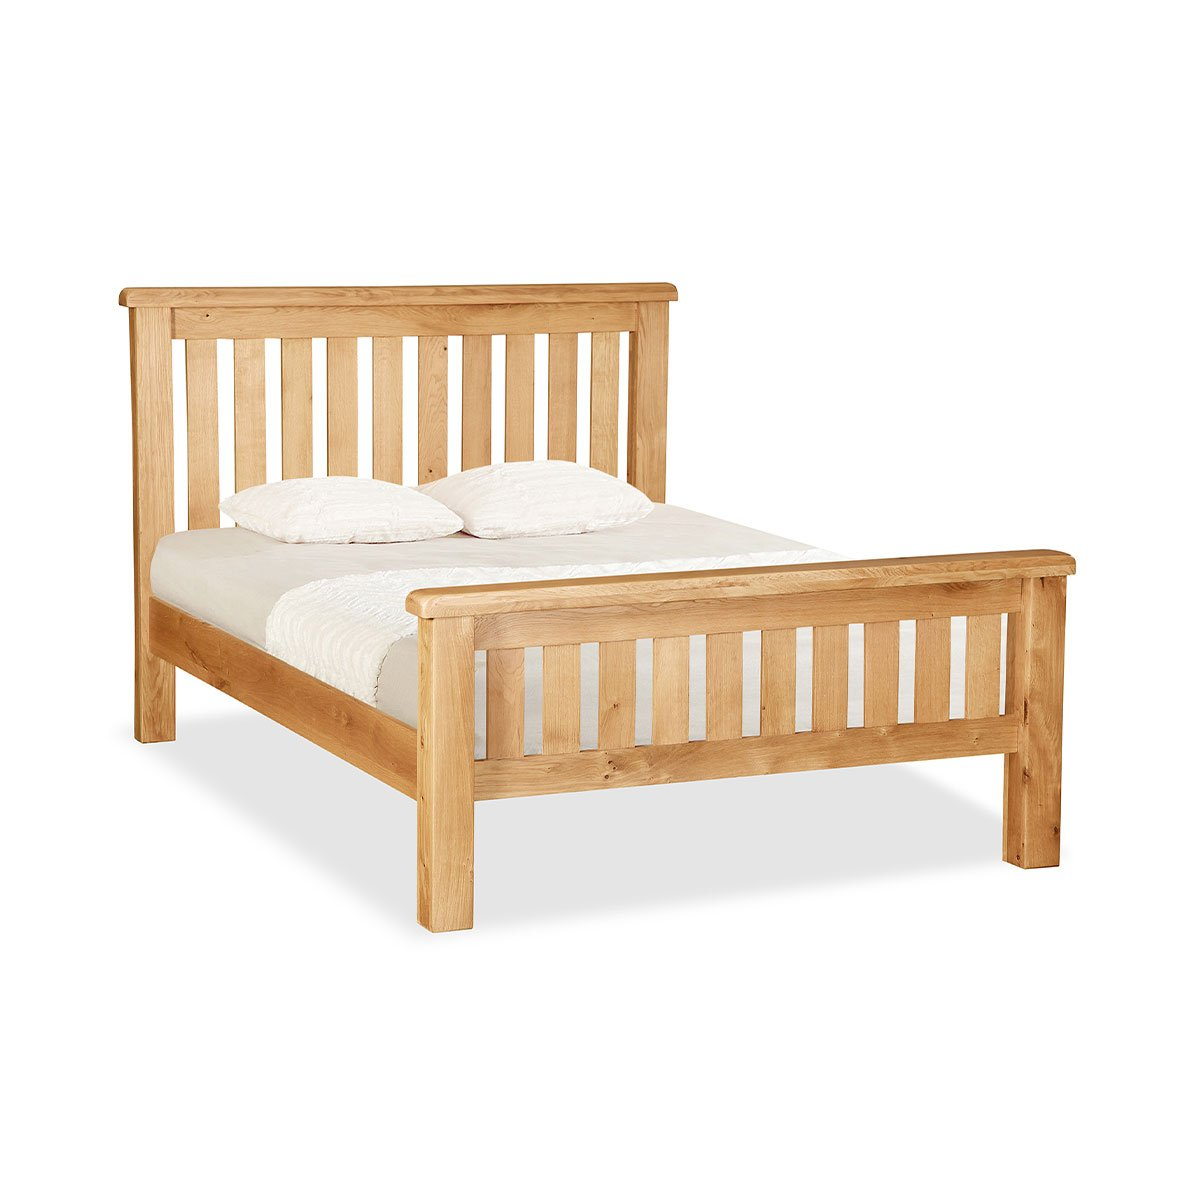 Salisbury 5' Slatted Bed